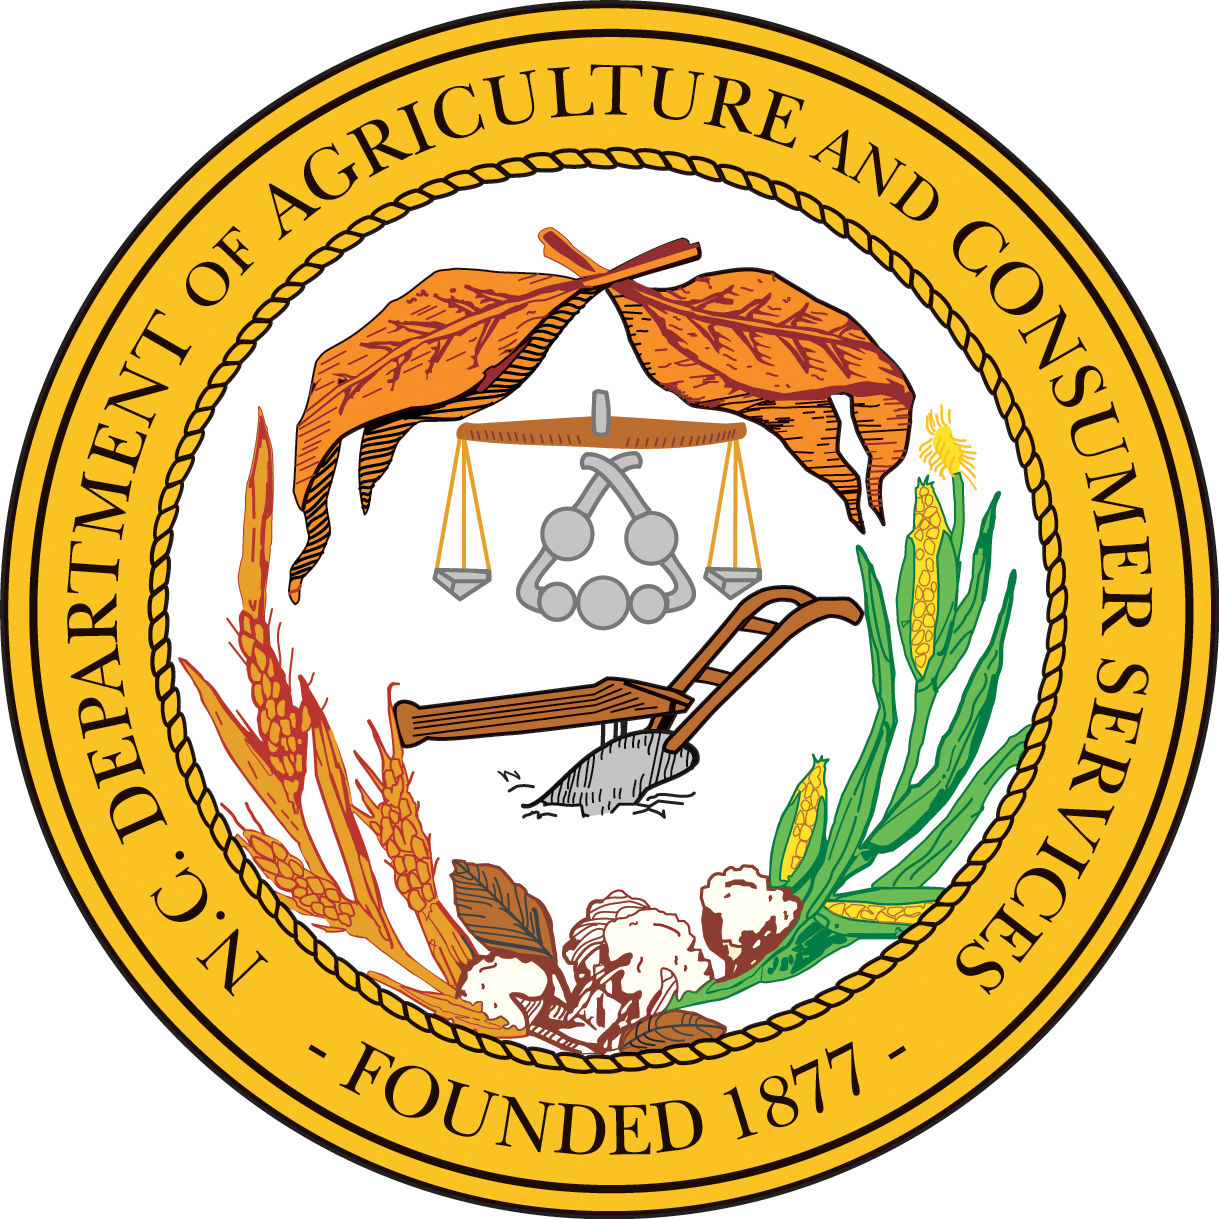 North Carolina Department of Agriculture